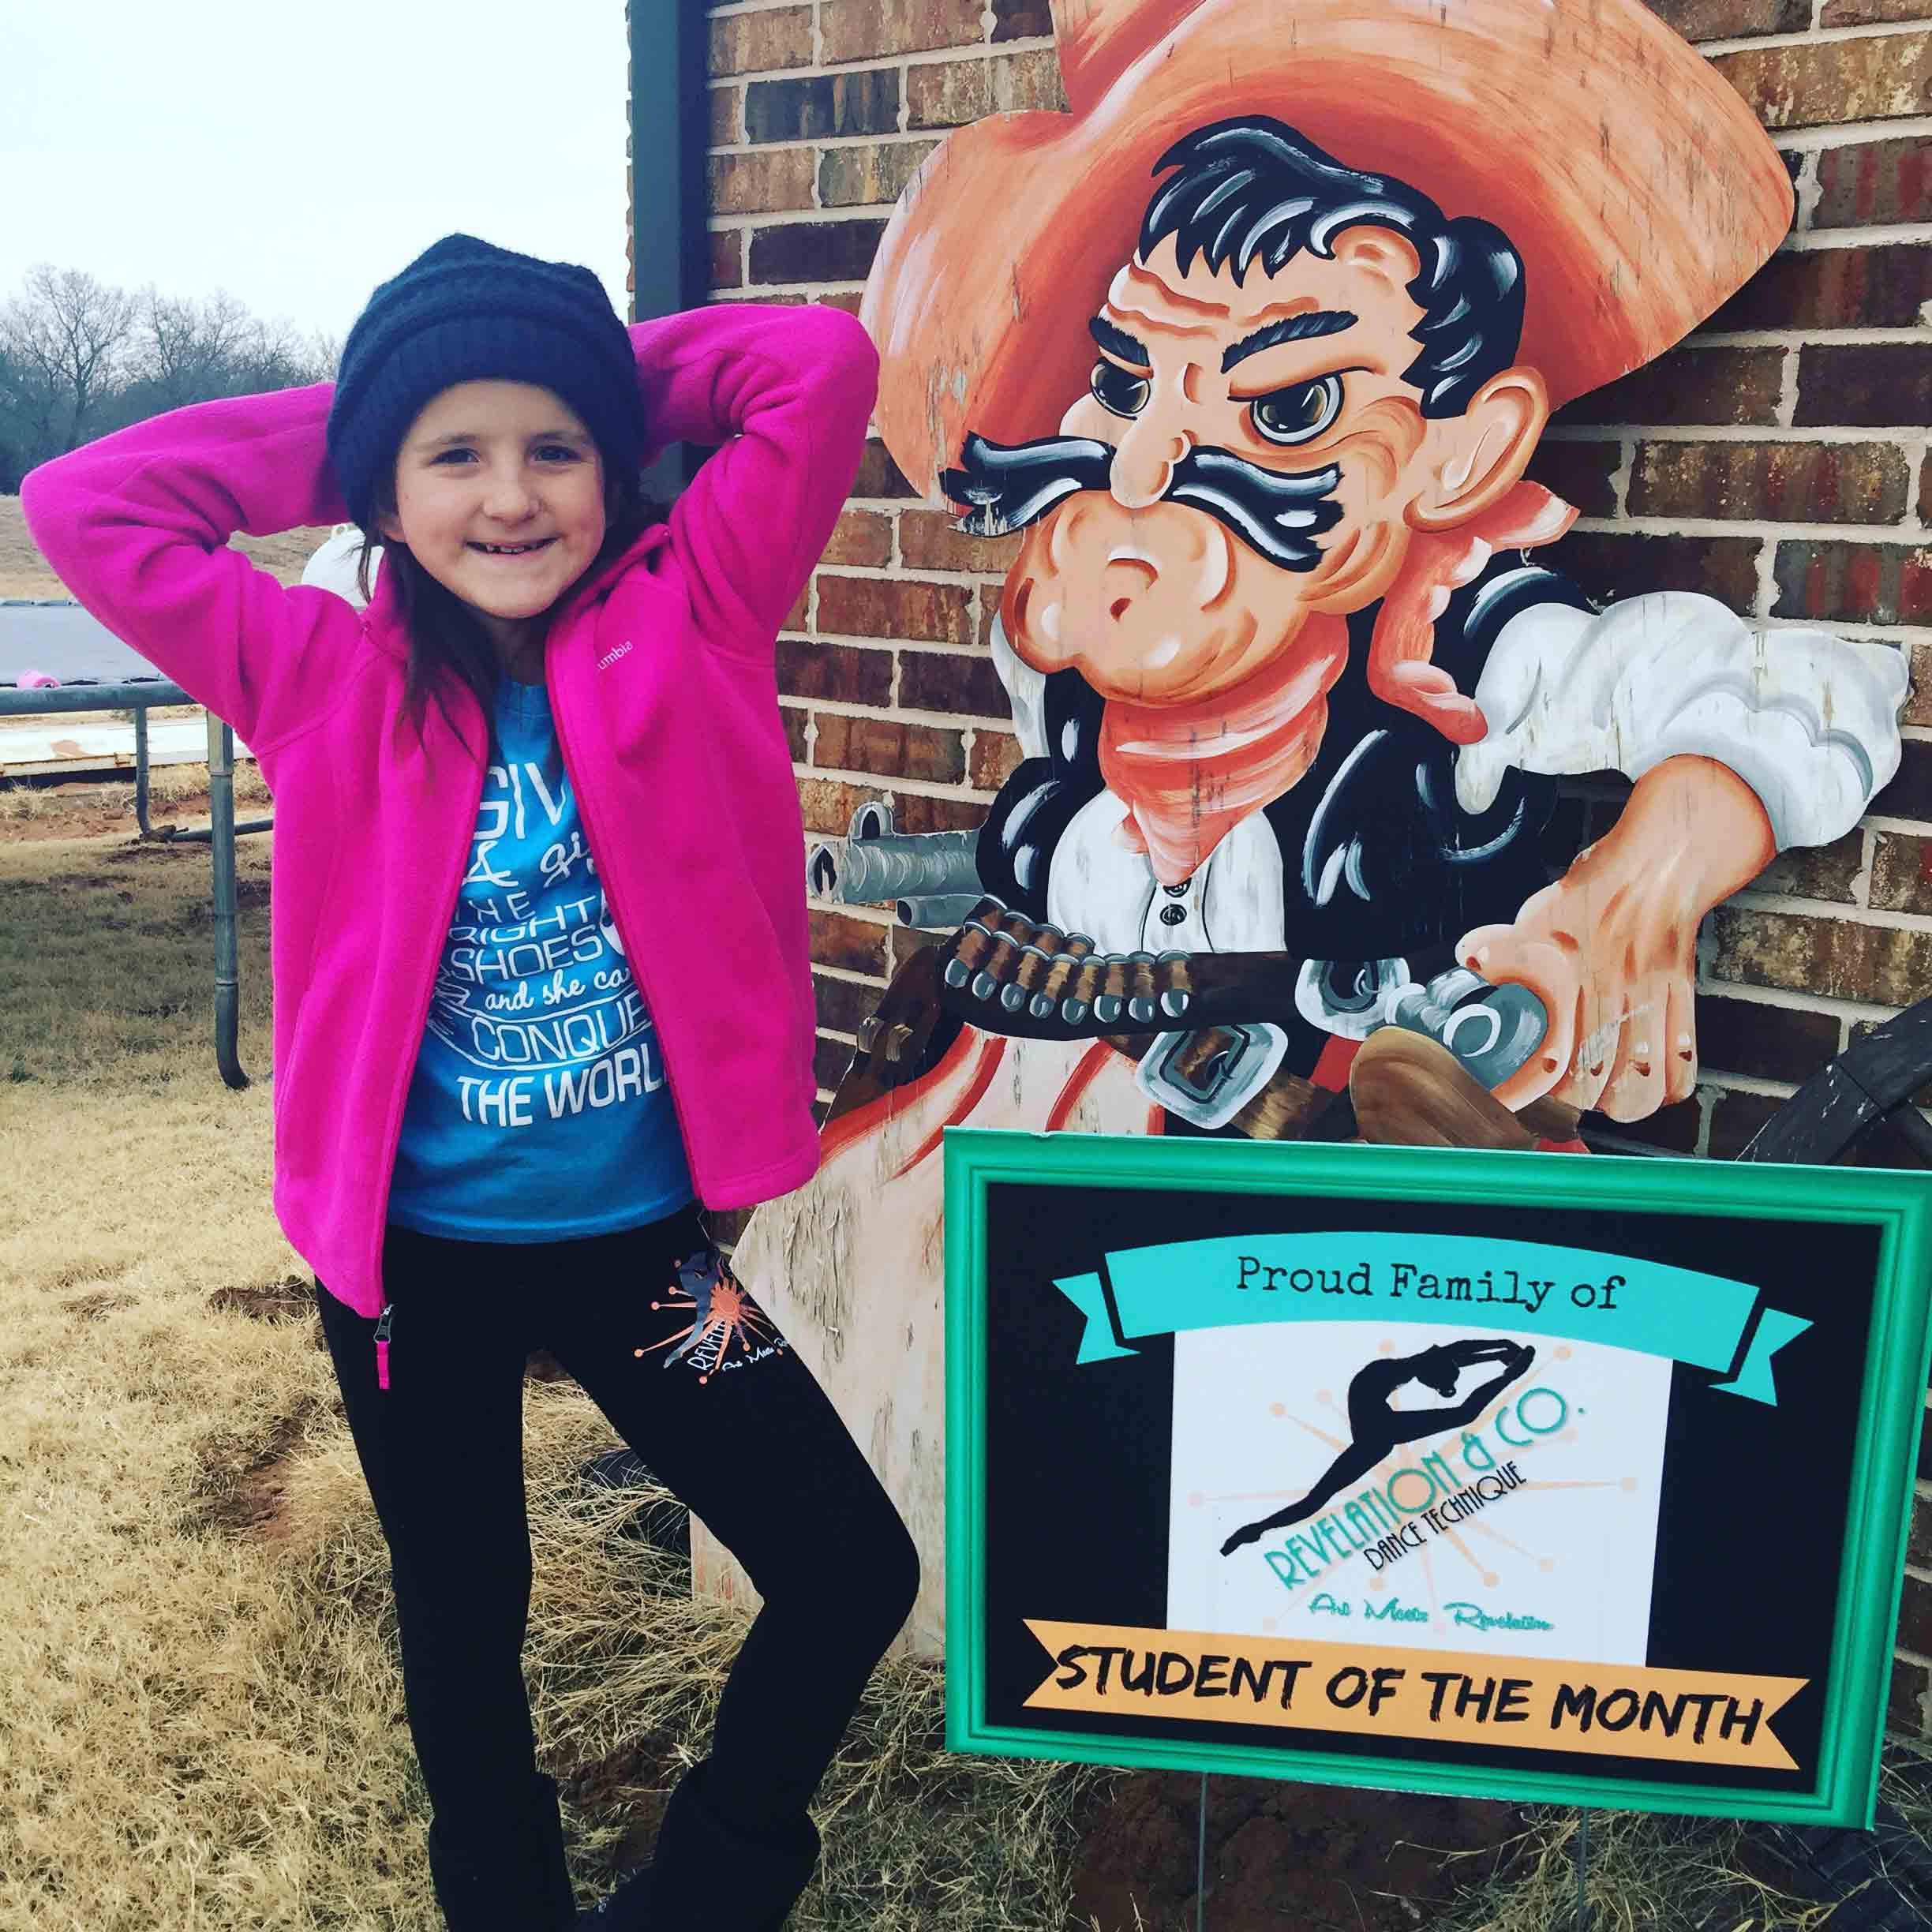 Leveled Student of the month woodward dance studio